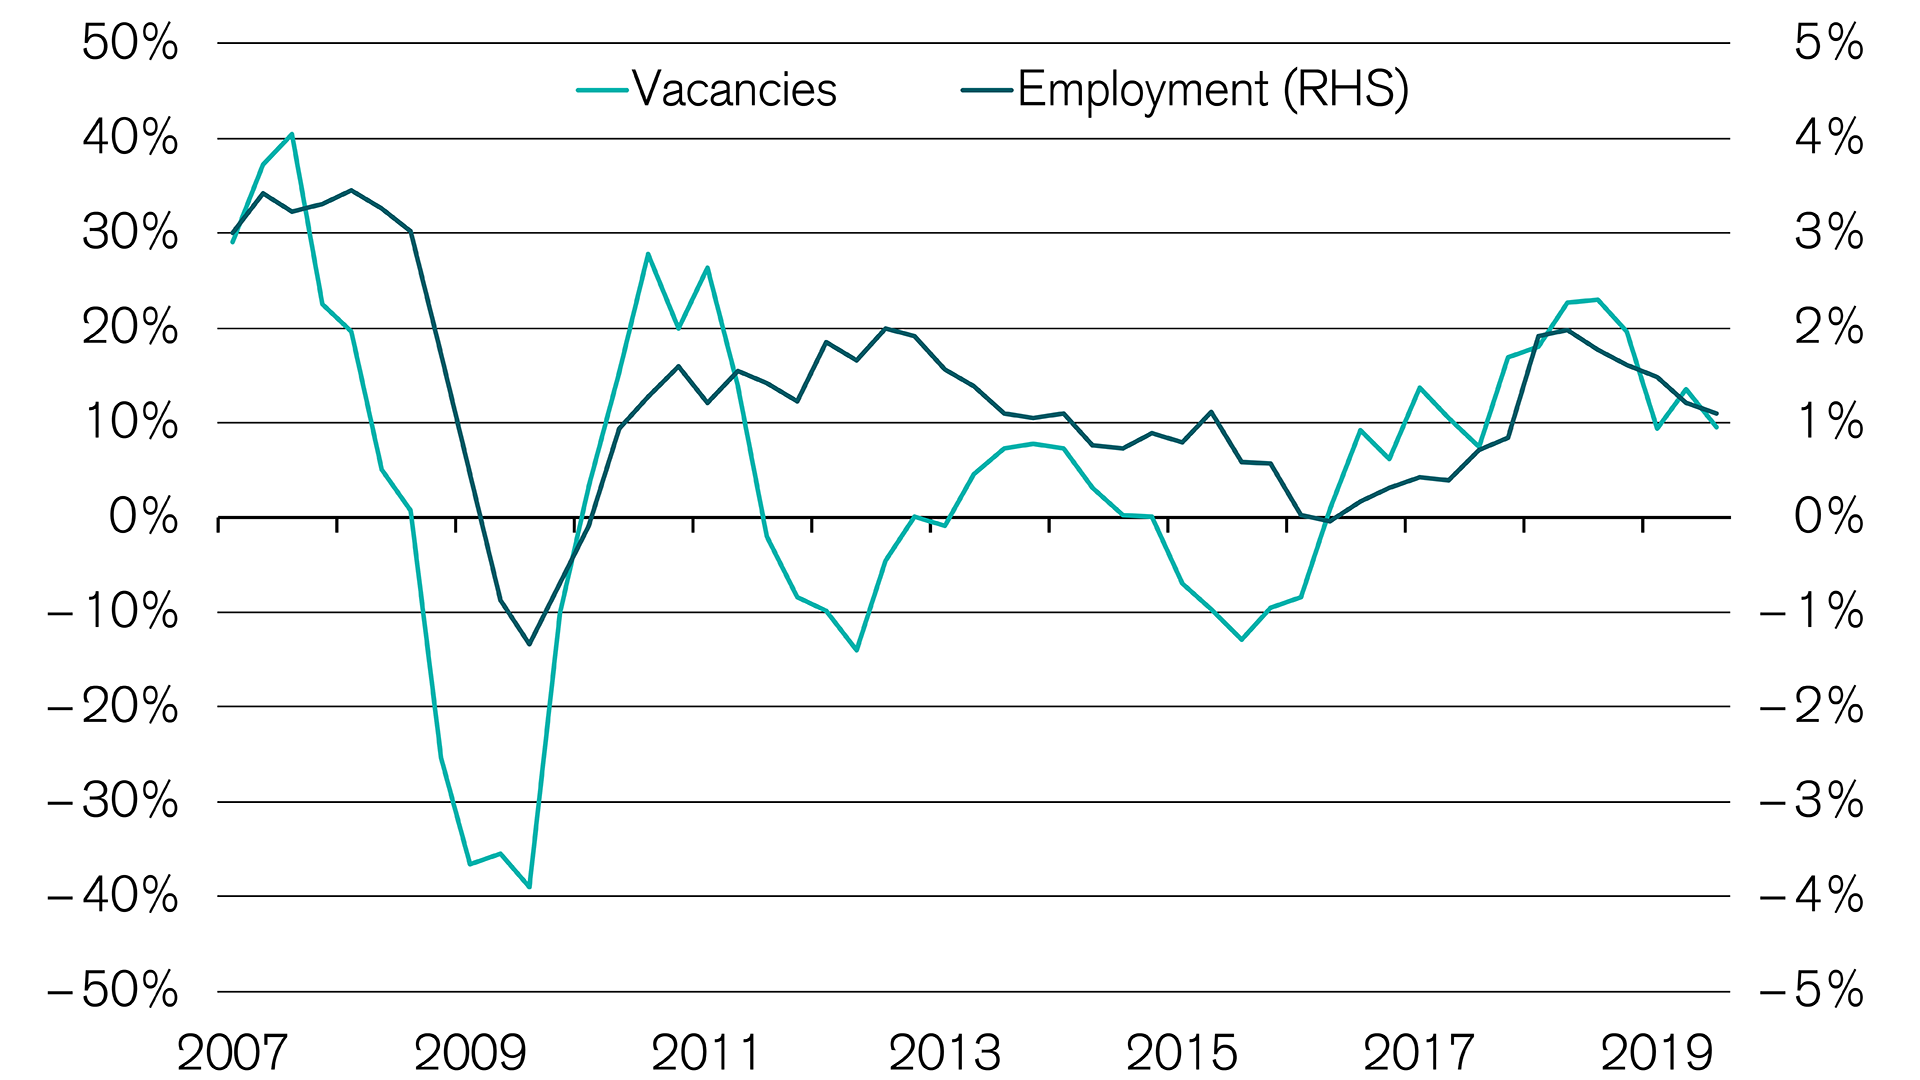 Swiss labor market appears solid